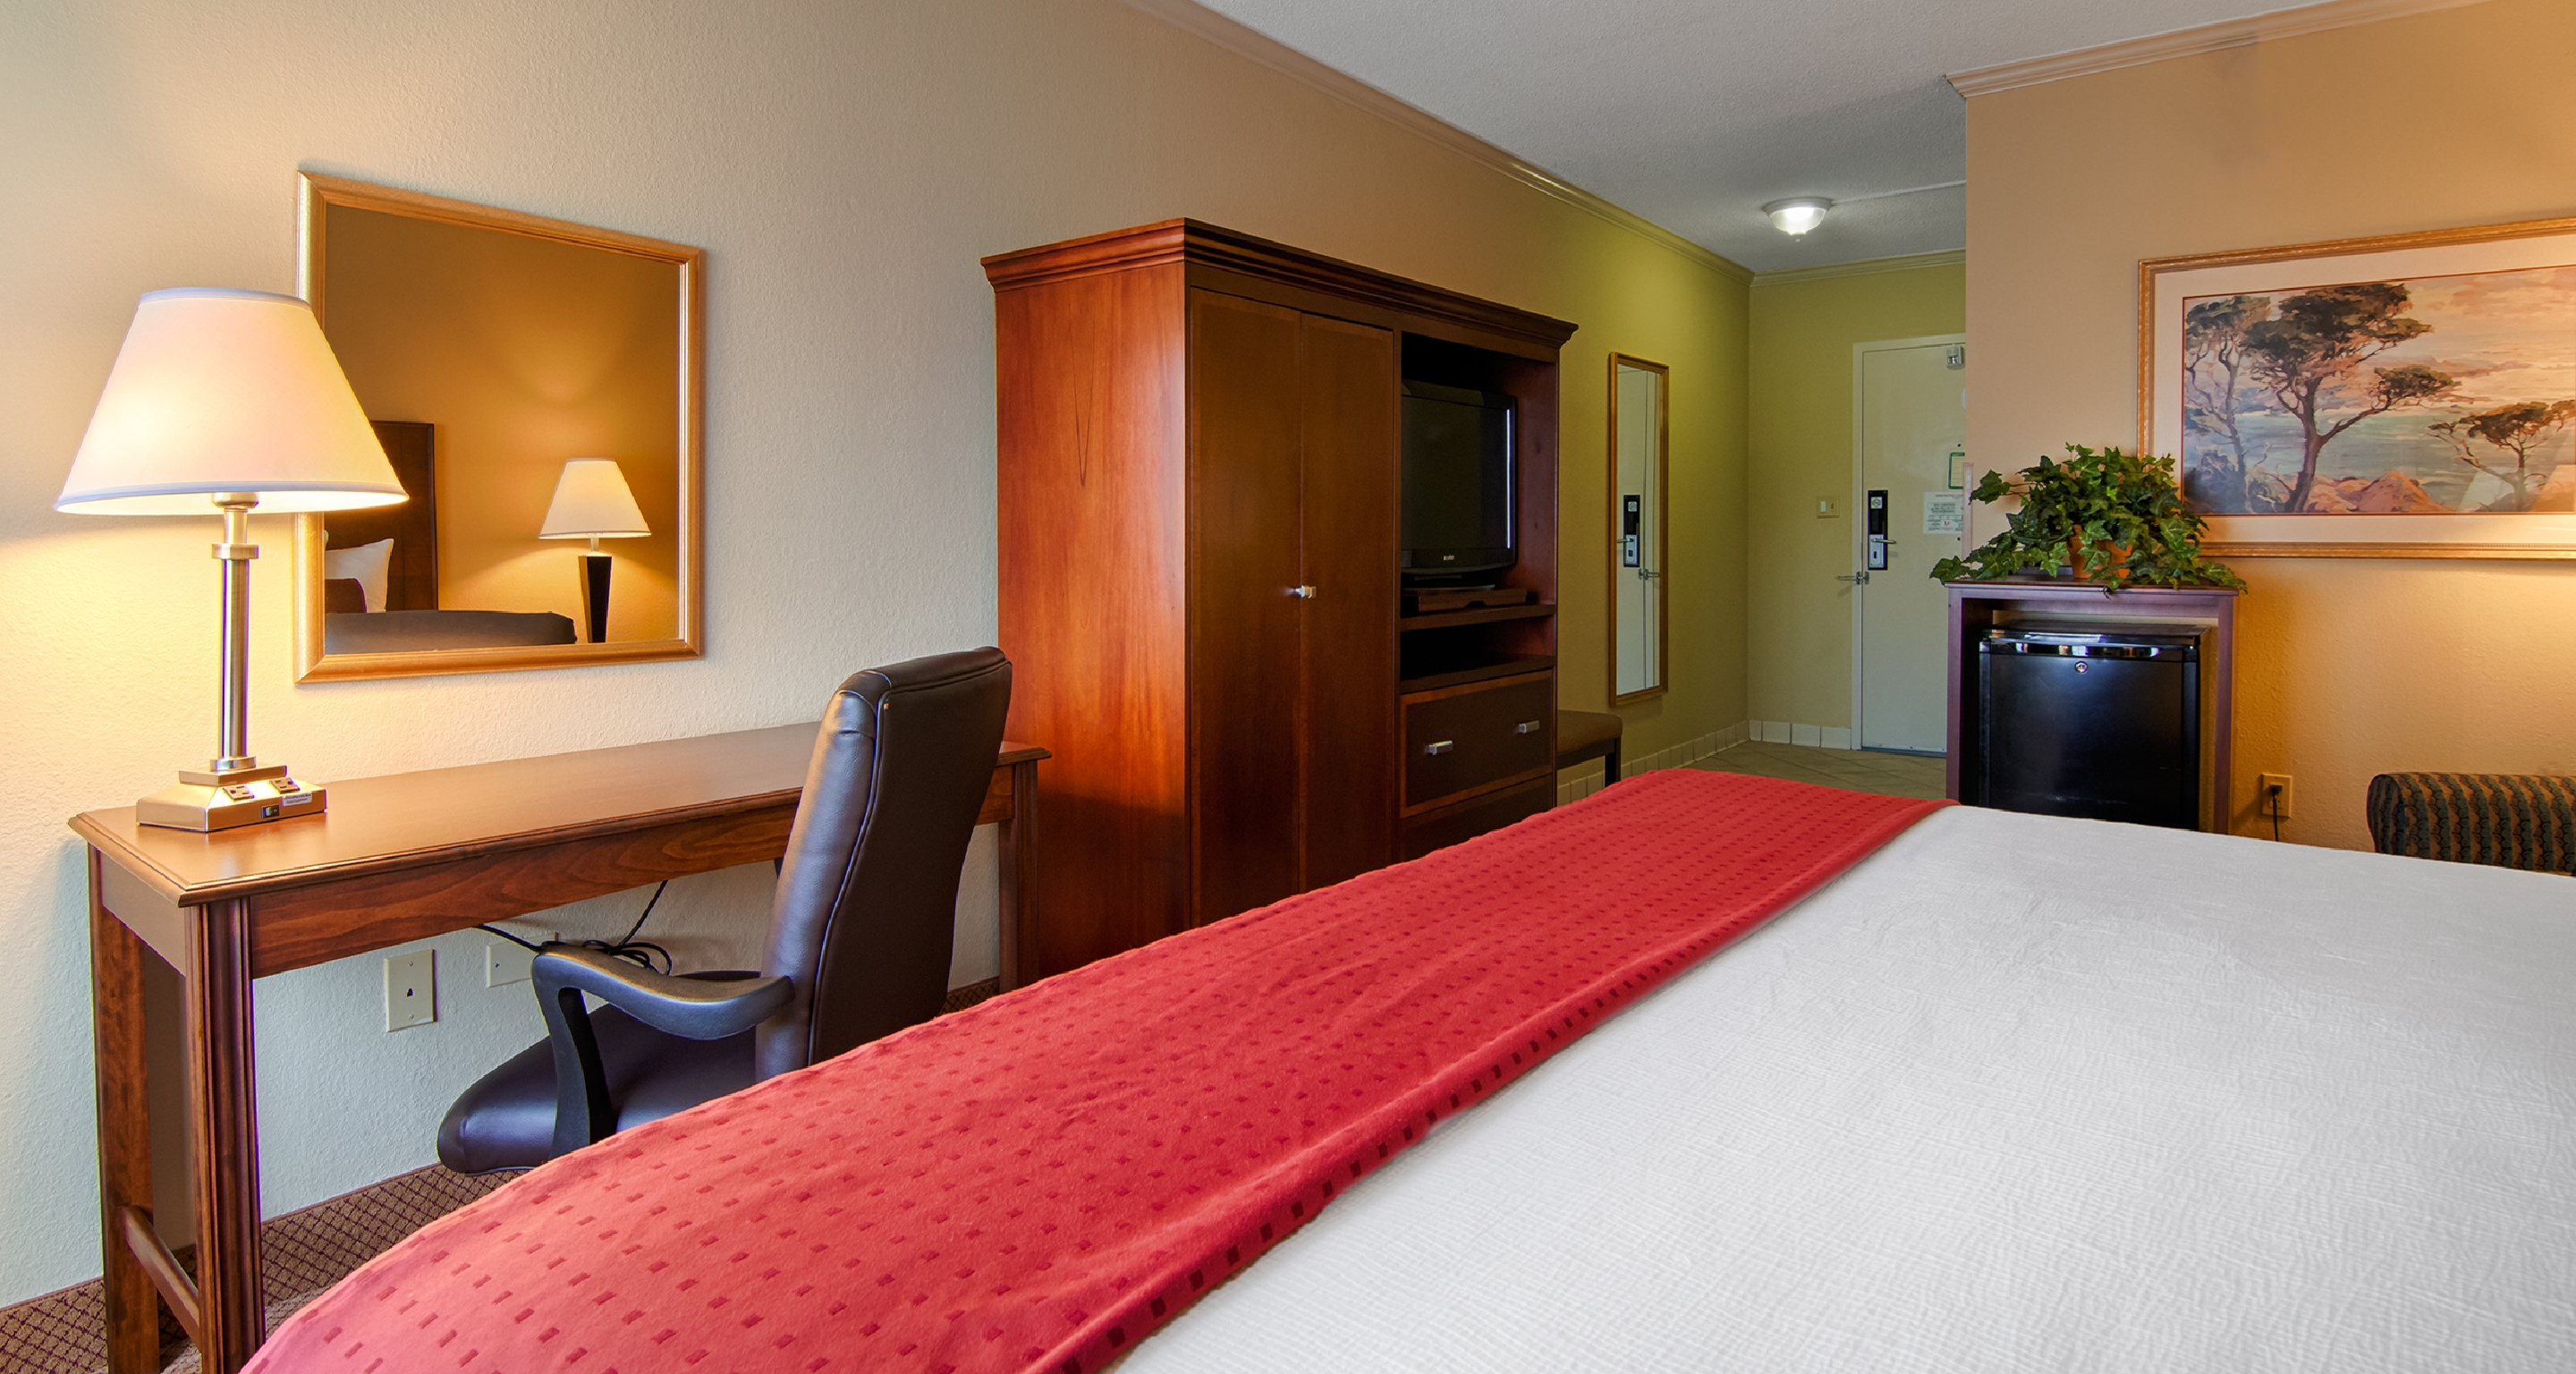 Best Western Plus Morristown Conference Center Hotel image 21